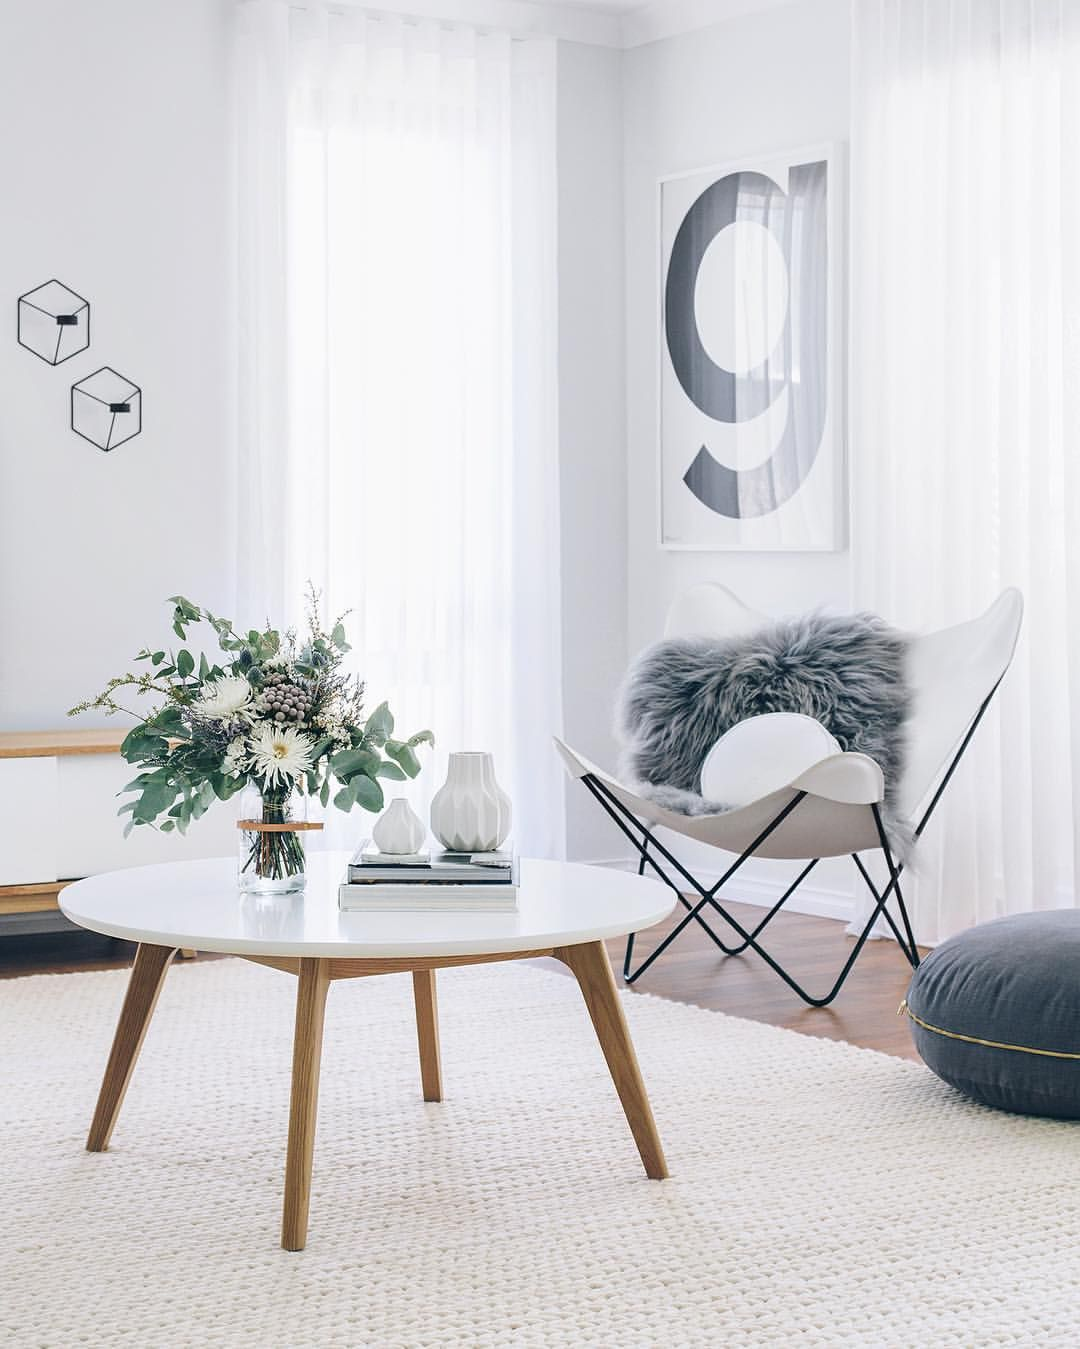 The best home decor ideias for you